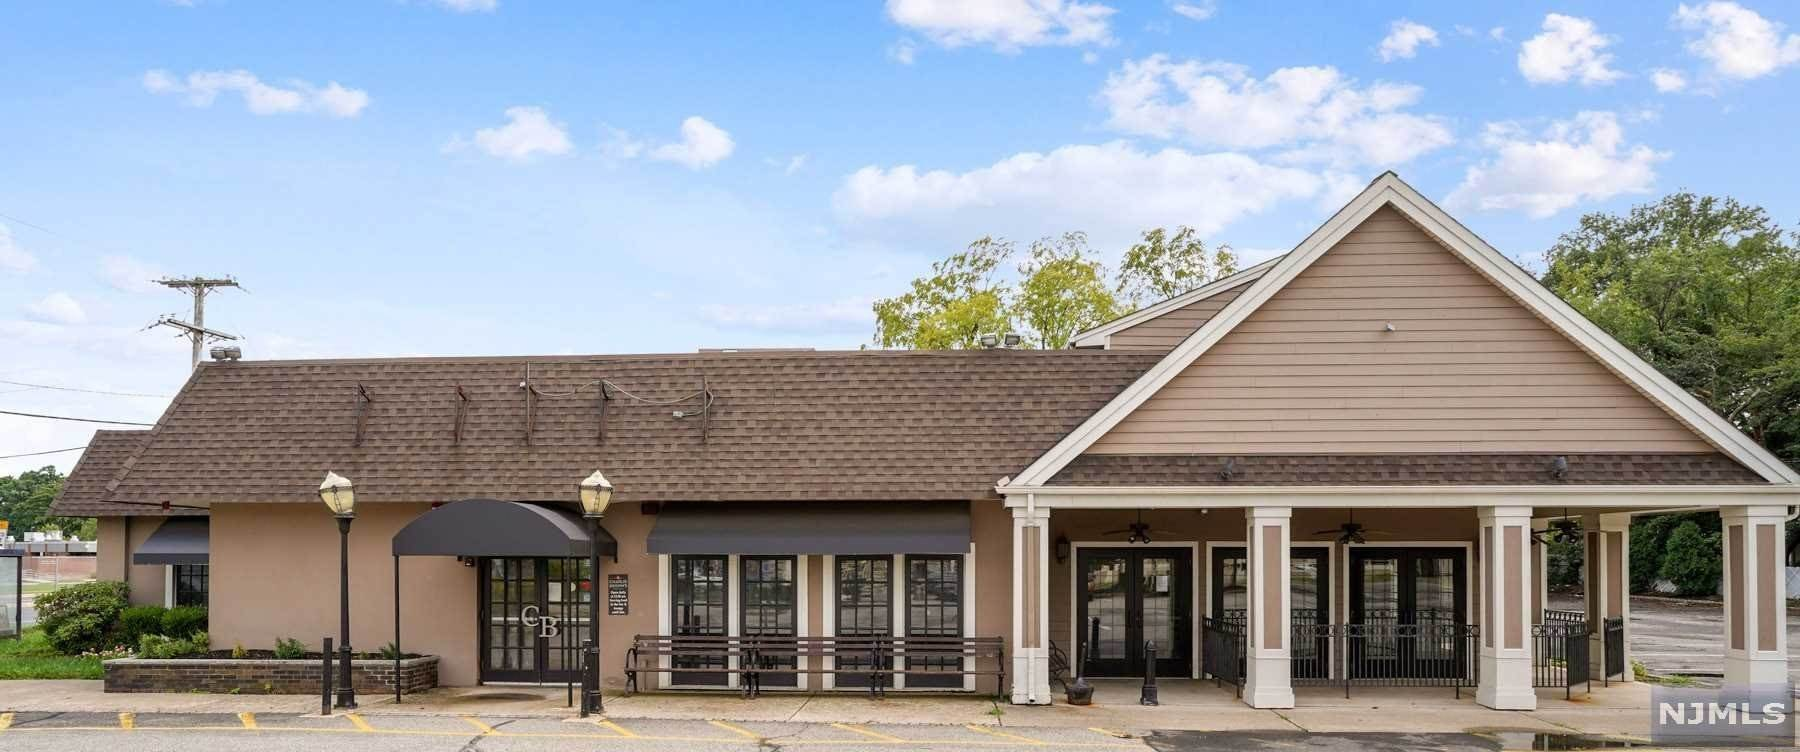 Commercial / Office for Sale at 167 West Main Street Denville, New Jersey, 07834 United States